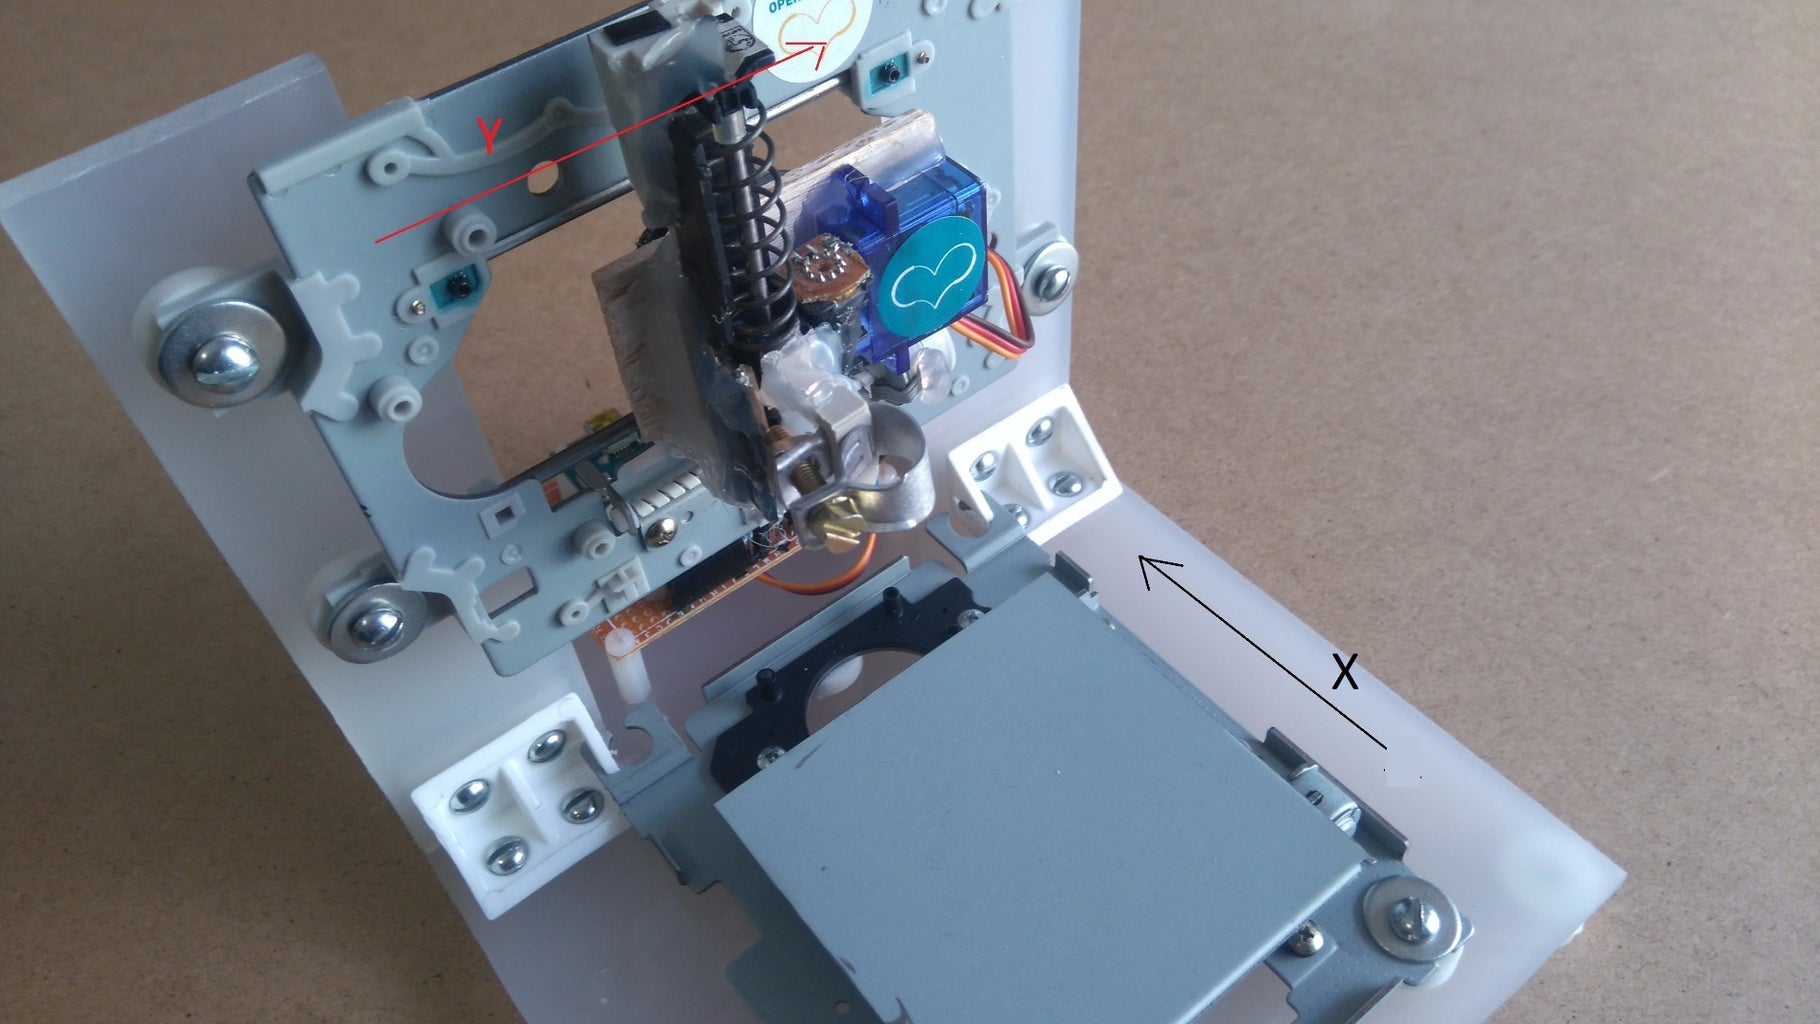 Testing Stepper Motors - X and Y Axes